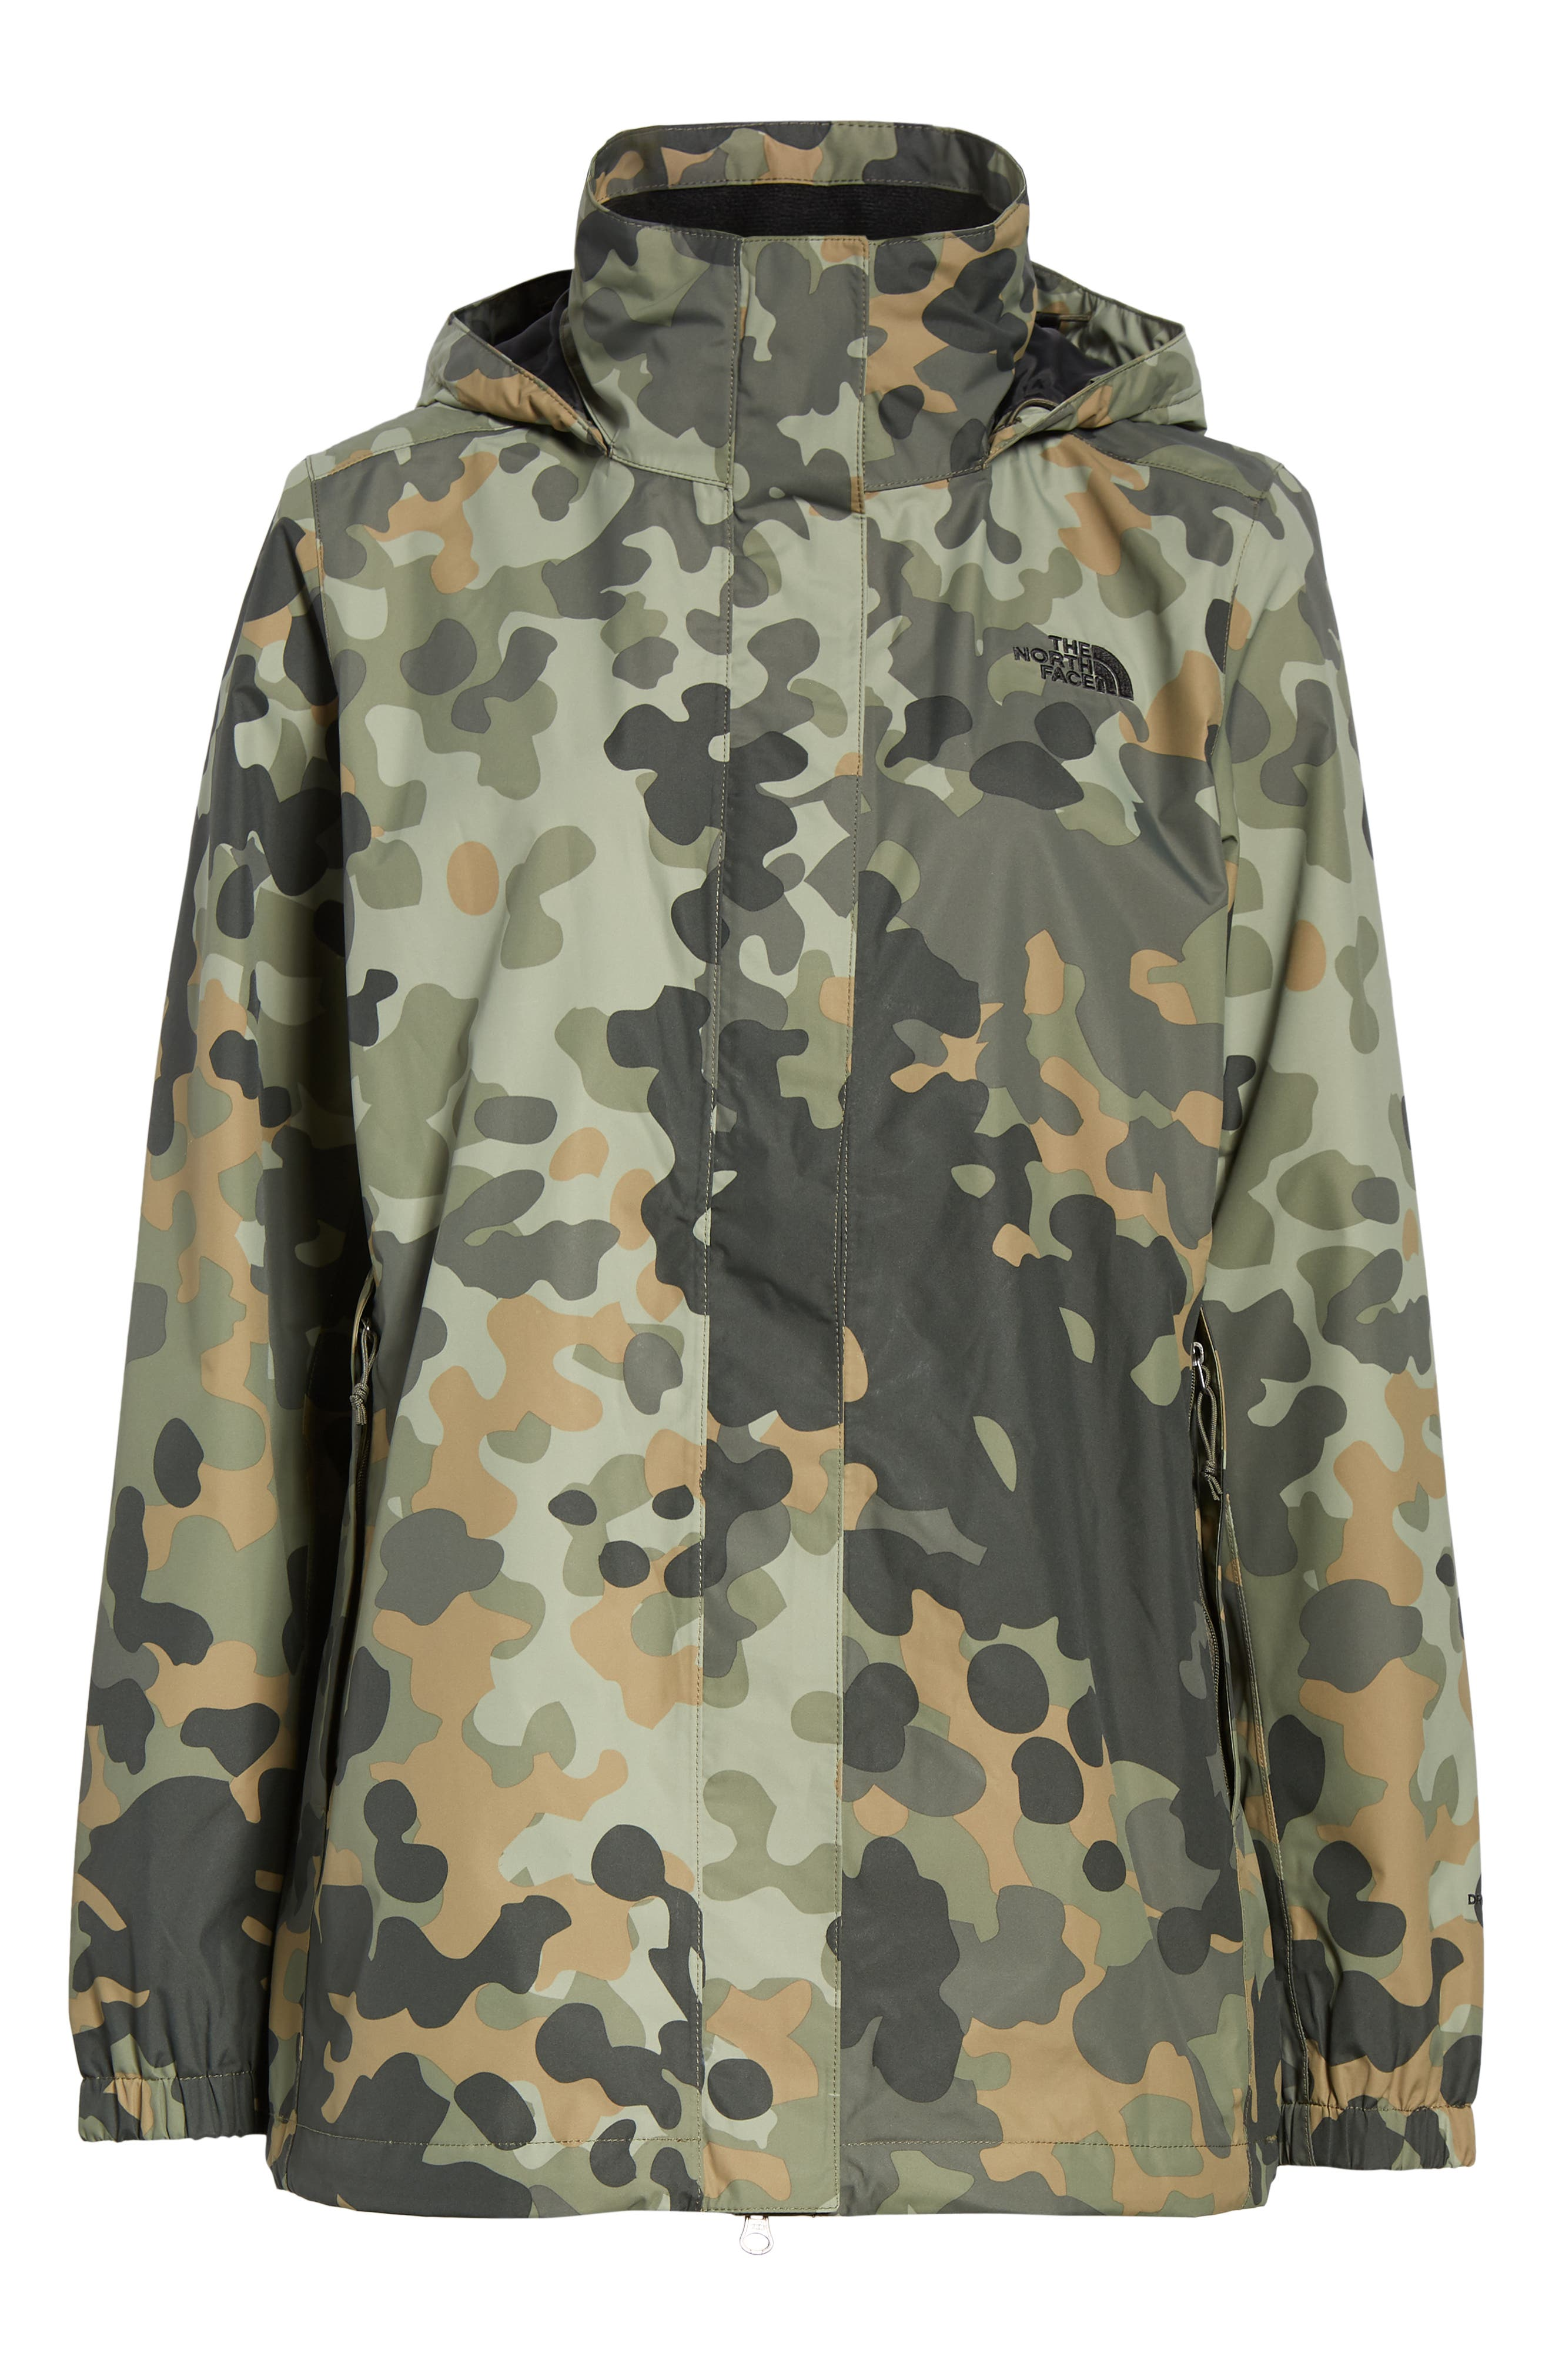 THE NORTH FACE, Resolve Waterproof Parka, Alternate thumbnail 6, color, NEW TAUPE GREEN MACROFLECK